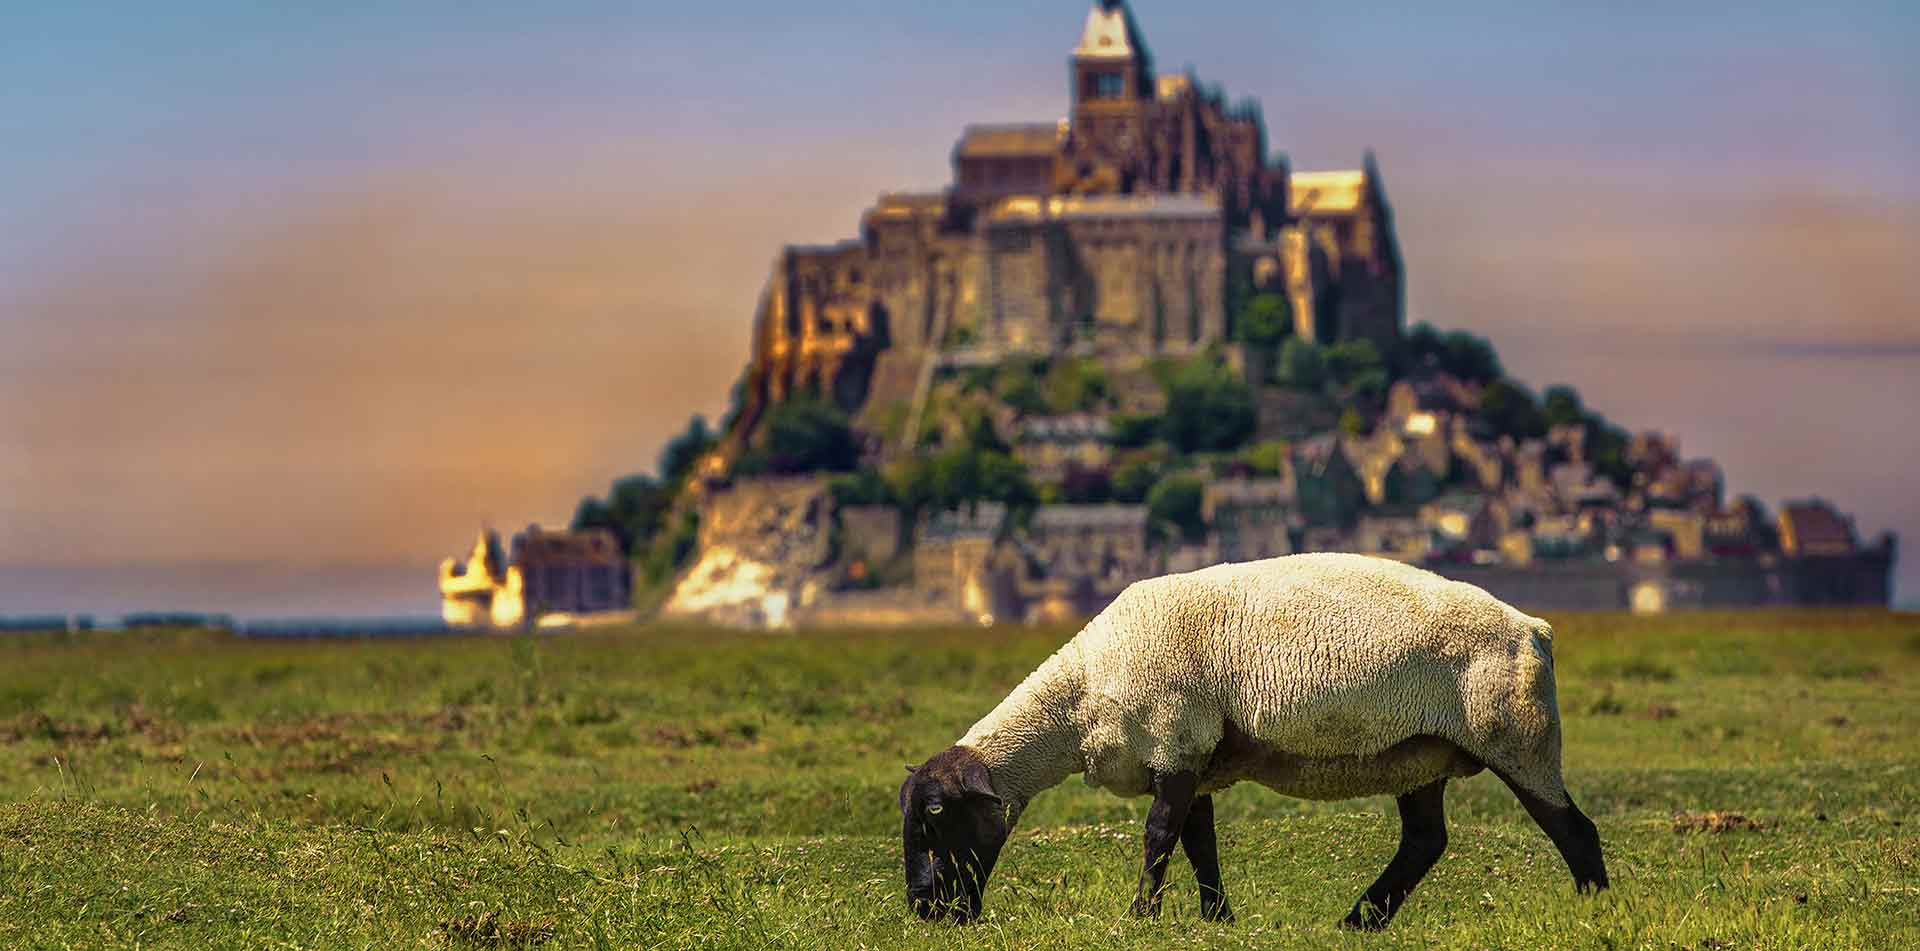 Europe France Normandy historic Mont-Saint-Michel colorful sunset sheep grazing on green grass - luxury vacation destinations